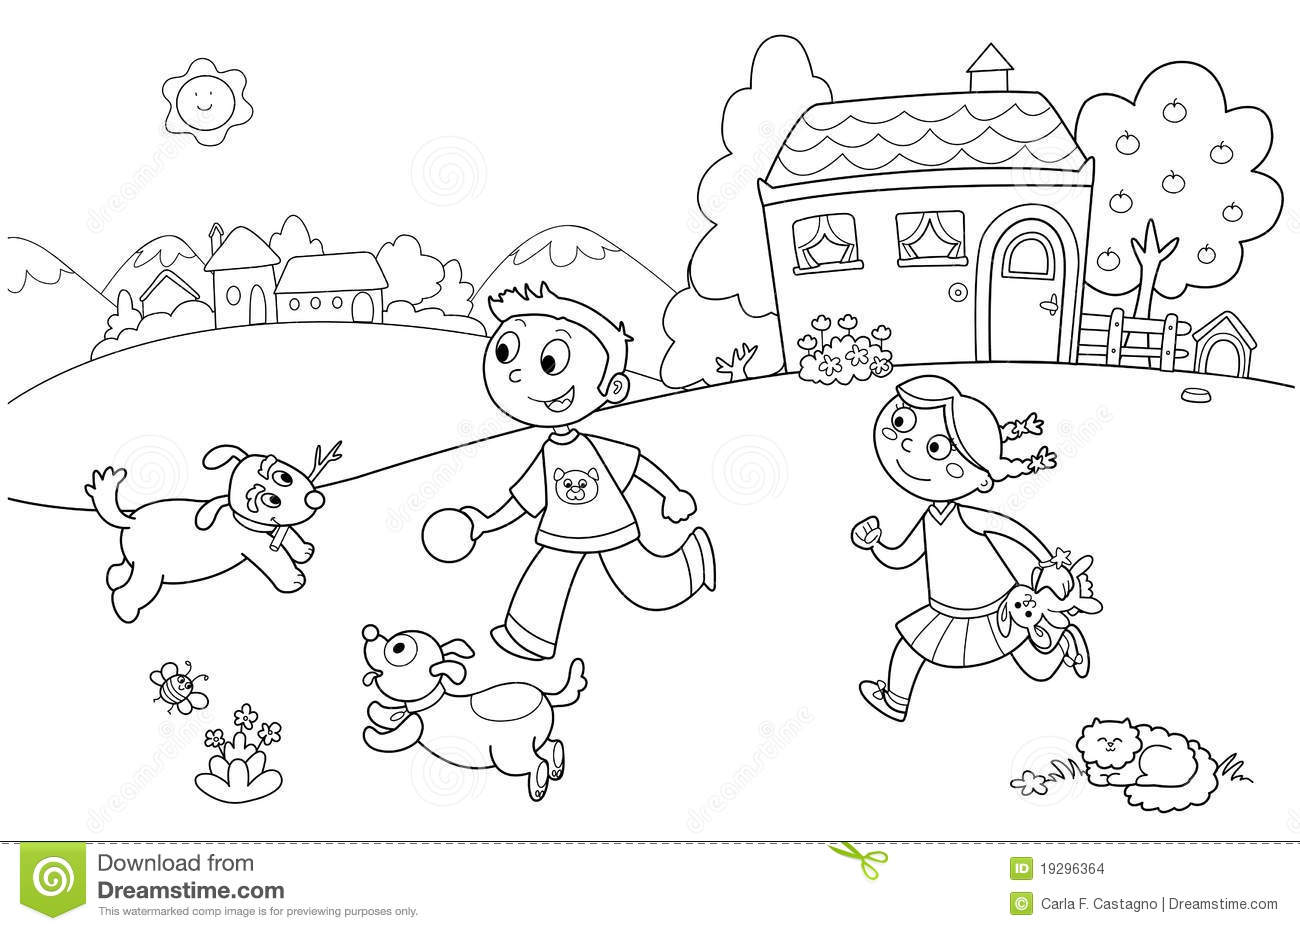 ... girl running with two dogs and other animals. Coloring illustration